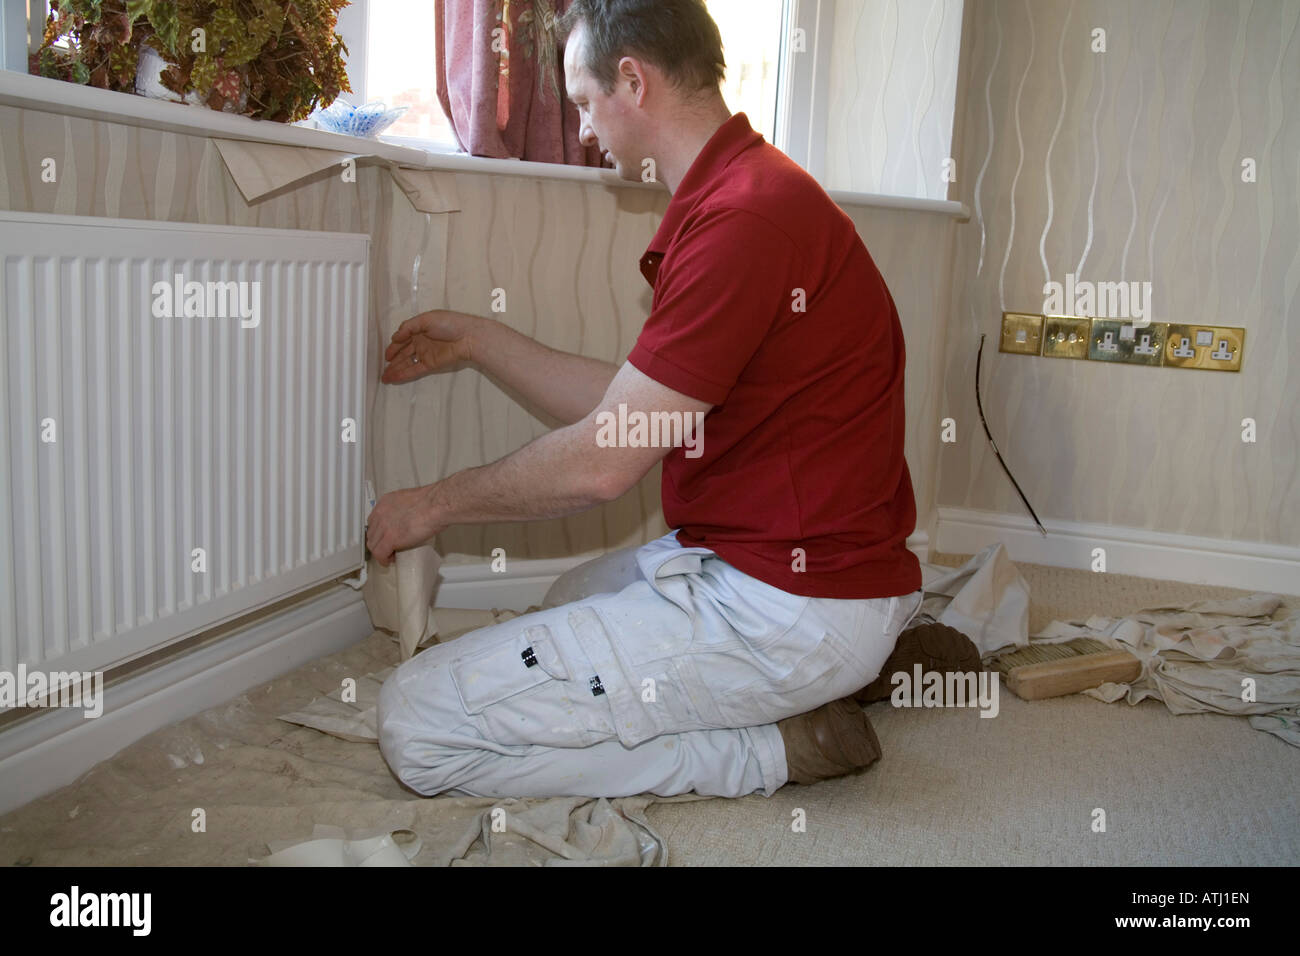 NORTH WALES UK A painter and decorator kneeling down fitting a piece of wallpaper around a radiator - Stock Image